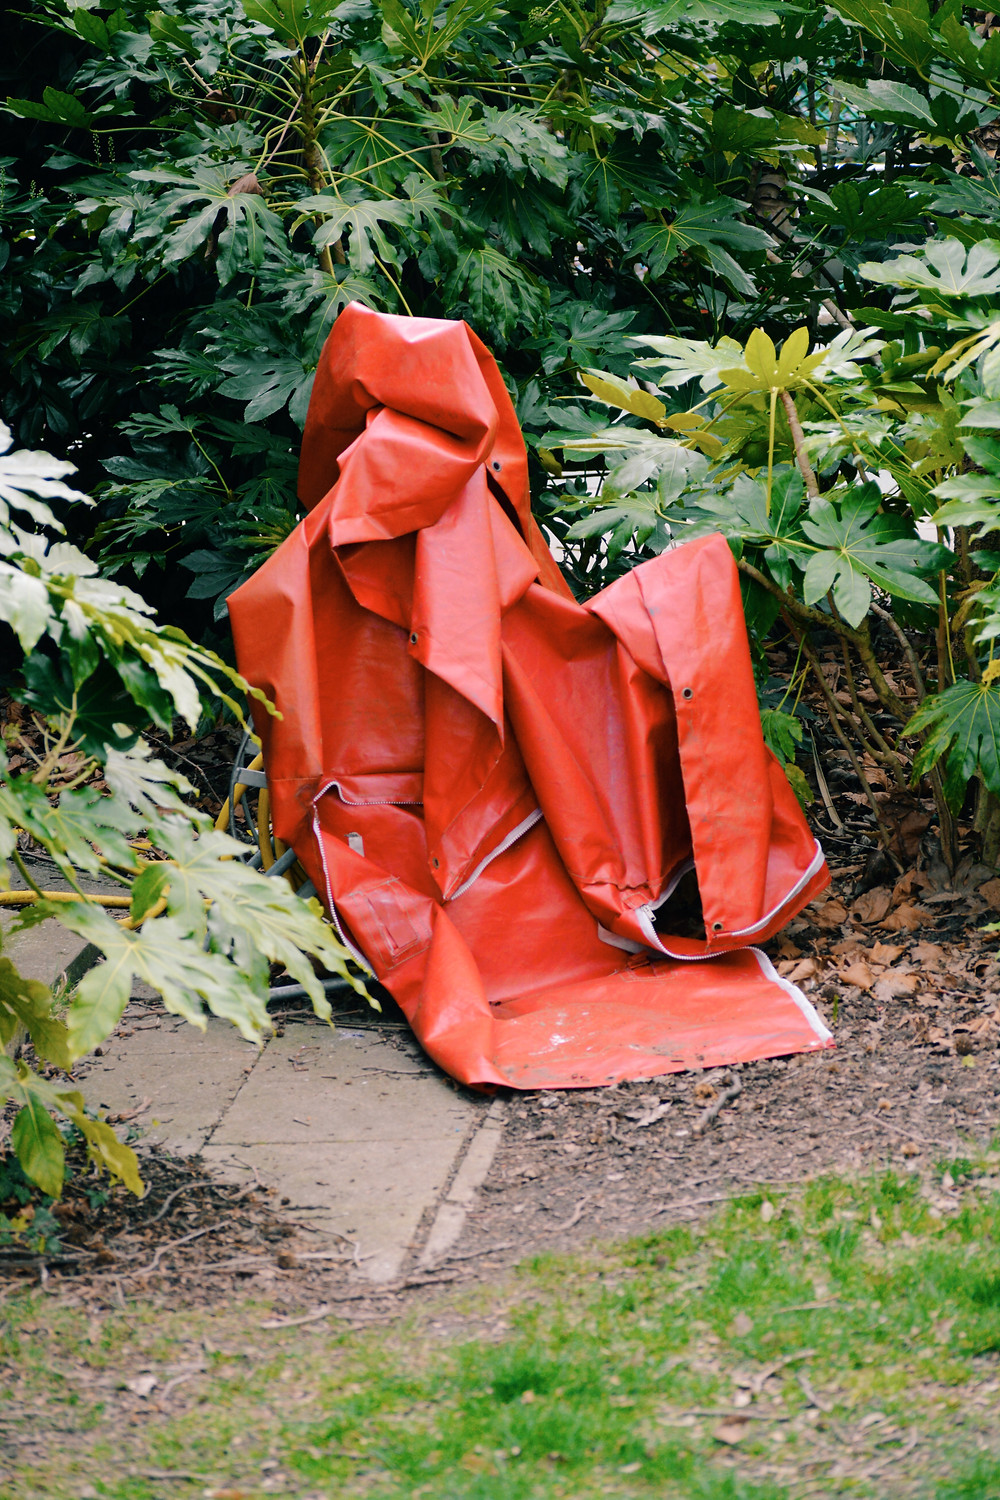 A large, red piece of discarded plastic lying amongst green plants.